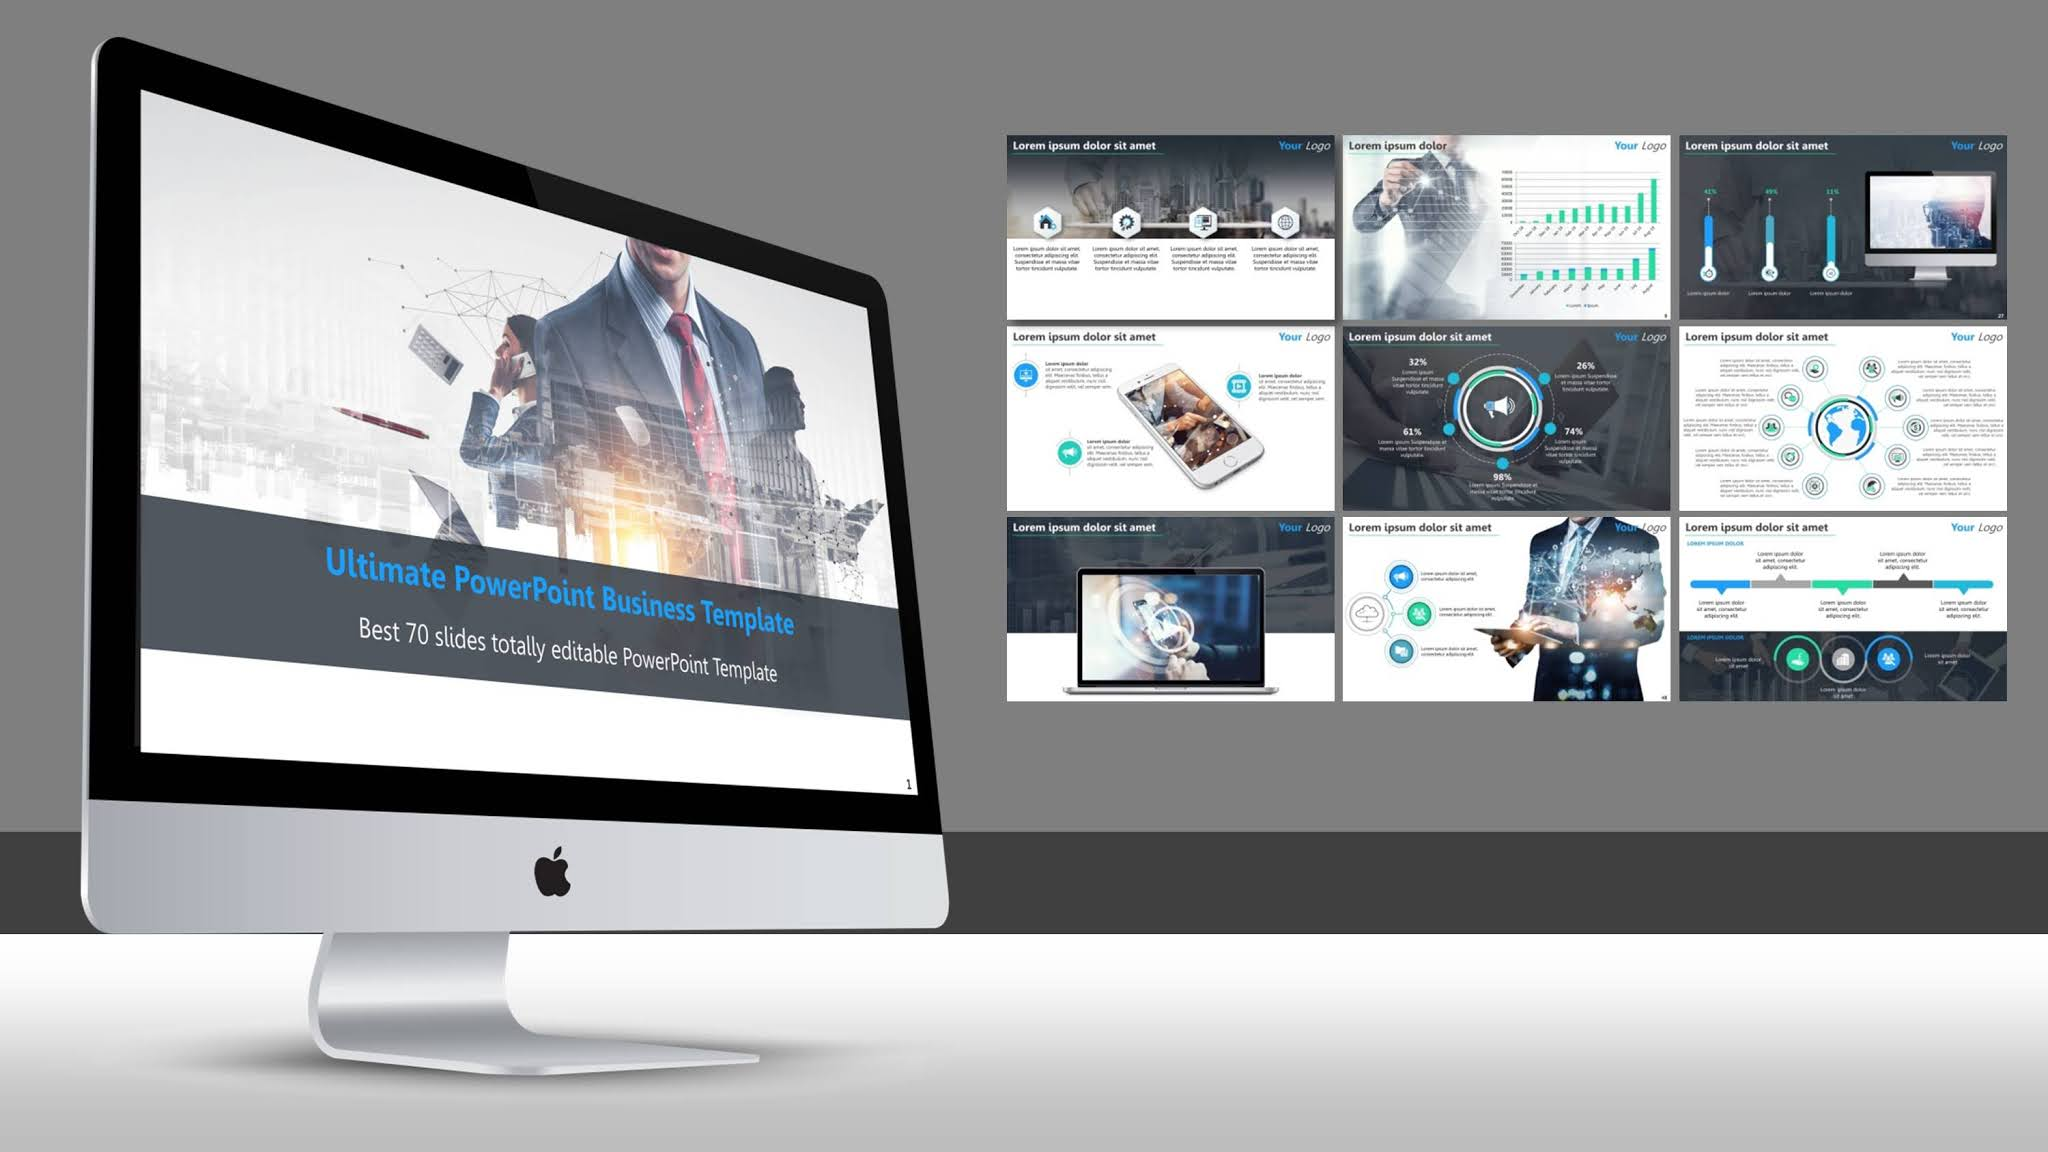 Best Professional PowerPoint Business Template